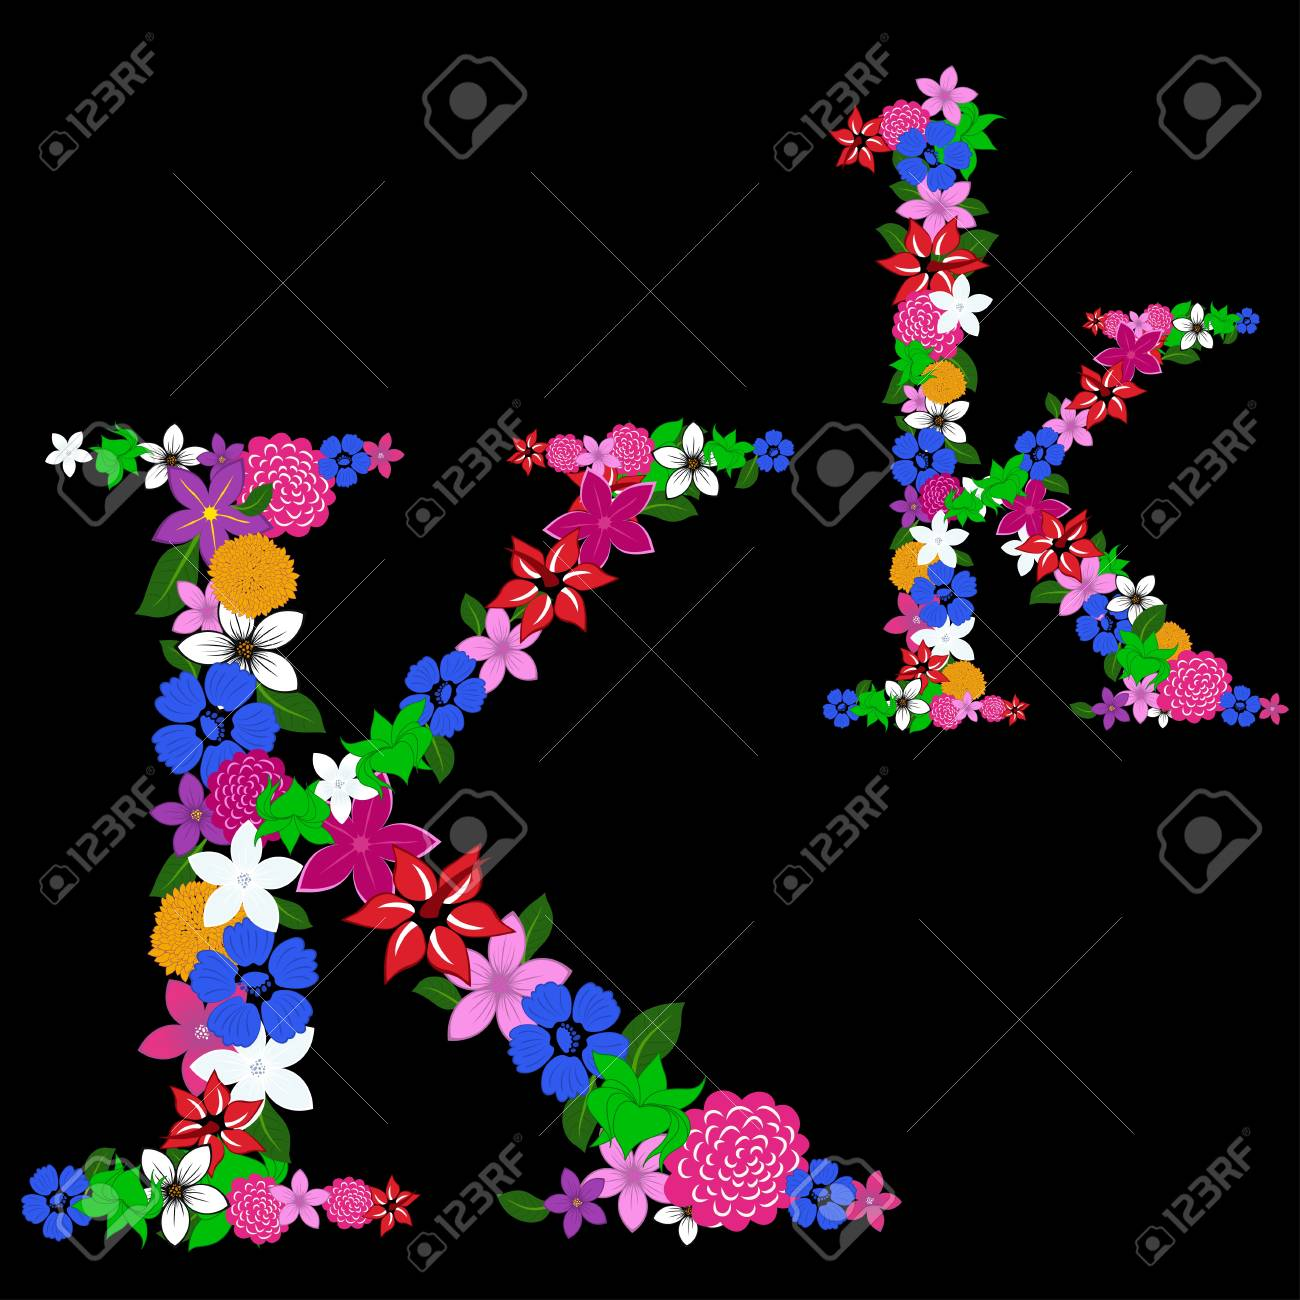 Floral alphabet letter for using in web and print design. Vector illustration. Stock Vector - 13719034